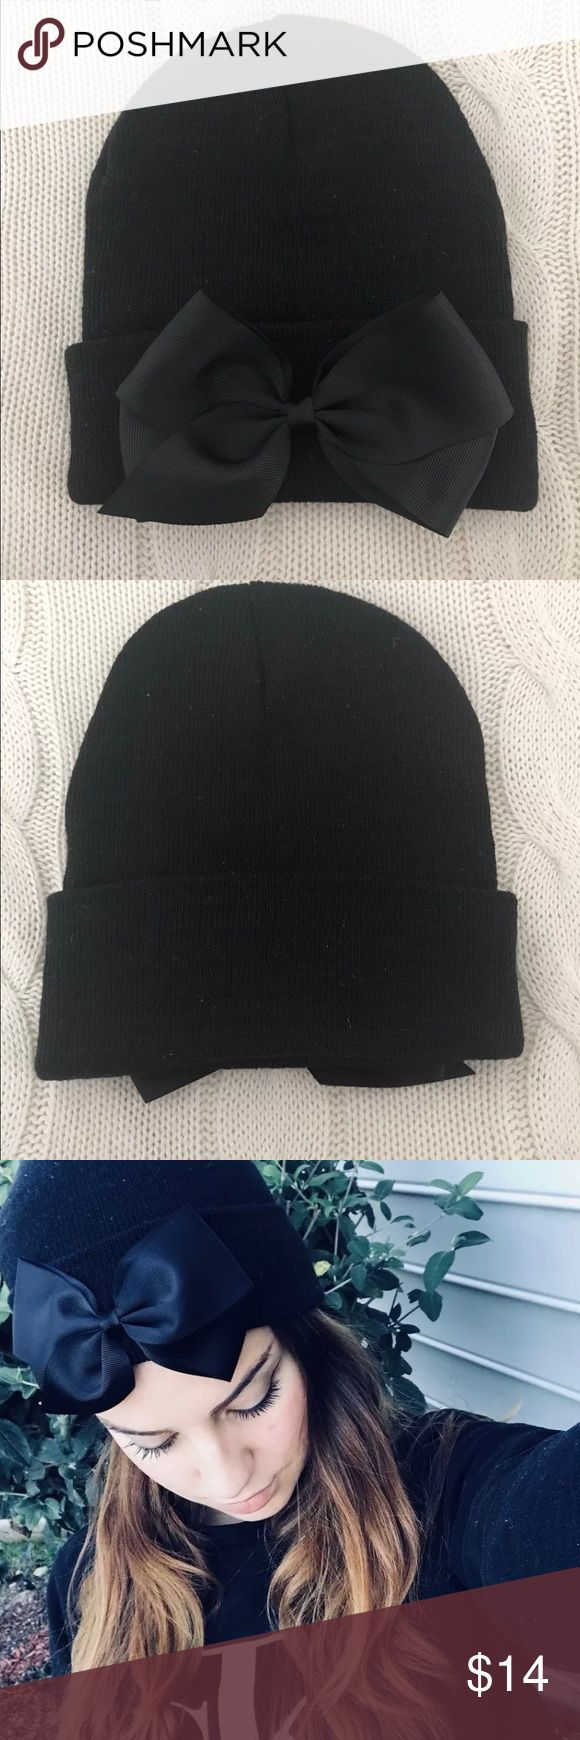 Winter Christmas Beanie Black Adorable winter beanie with black bow. NWT Accessories Hats